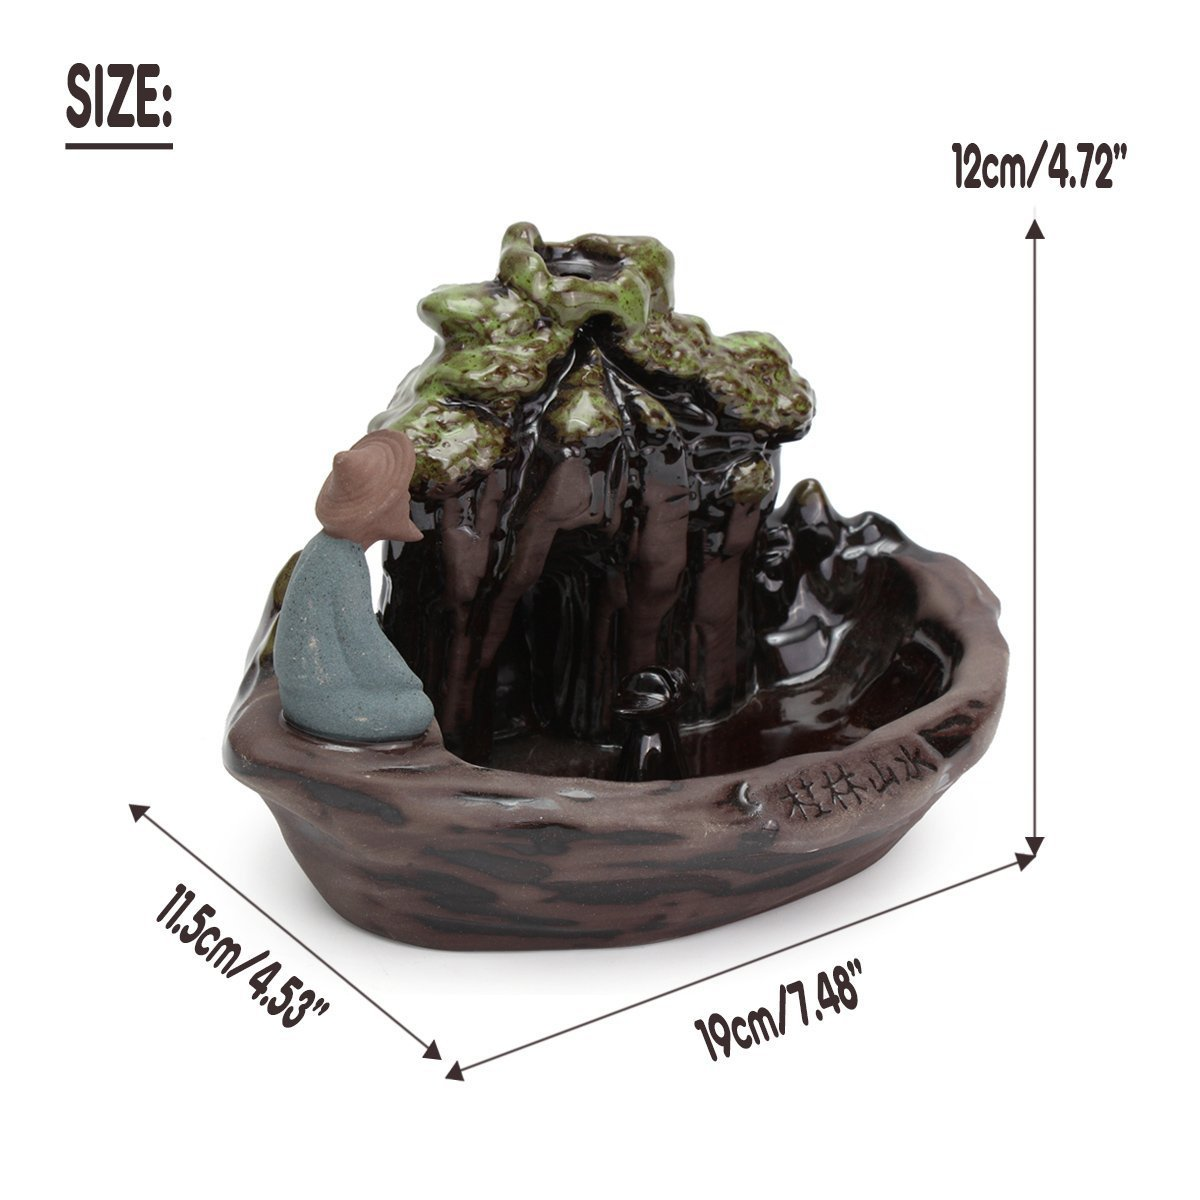 Zen Garden Fisherman Big Ceramic Incense Burner Backflow Incense Burner Holder Set Incense Cones Incense Stick Holder for Home Office Decor 7.5''X4.5''X4.7'' by MAYMII·HOME (Image #6)